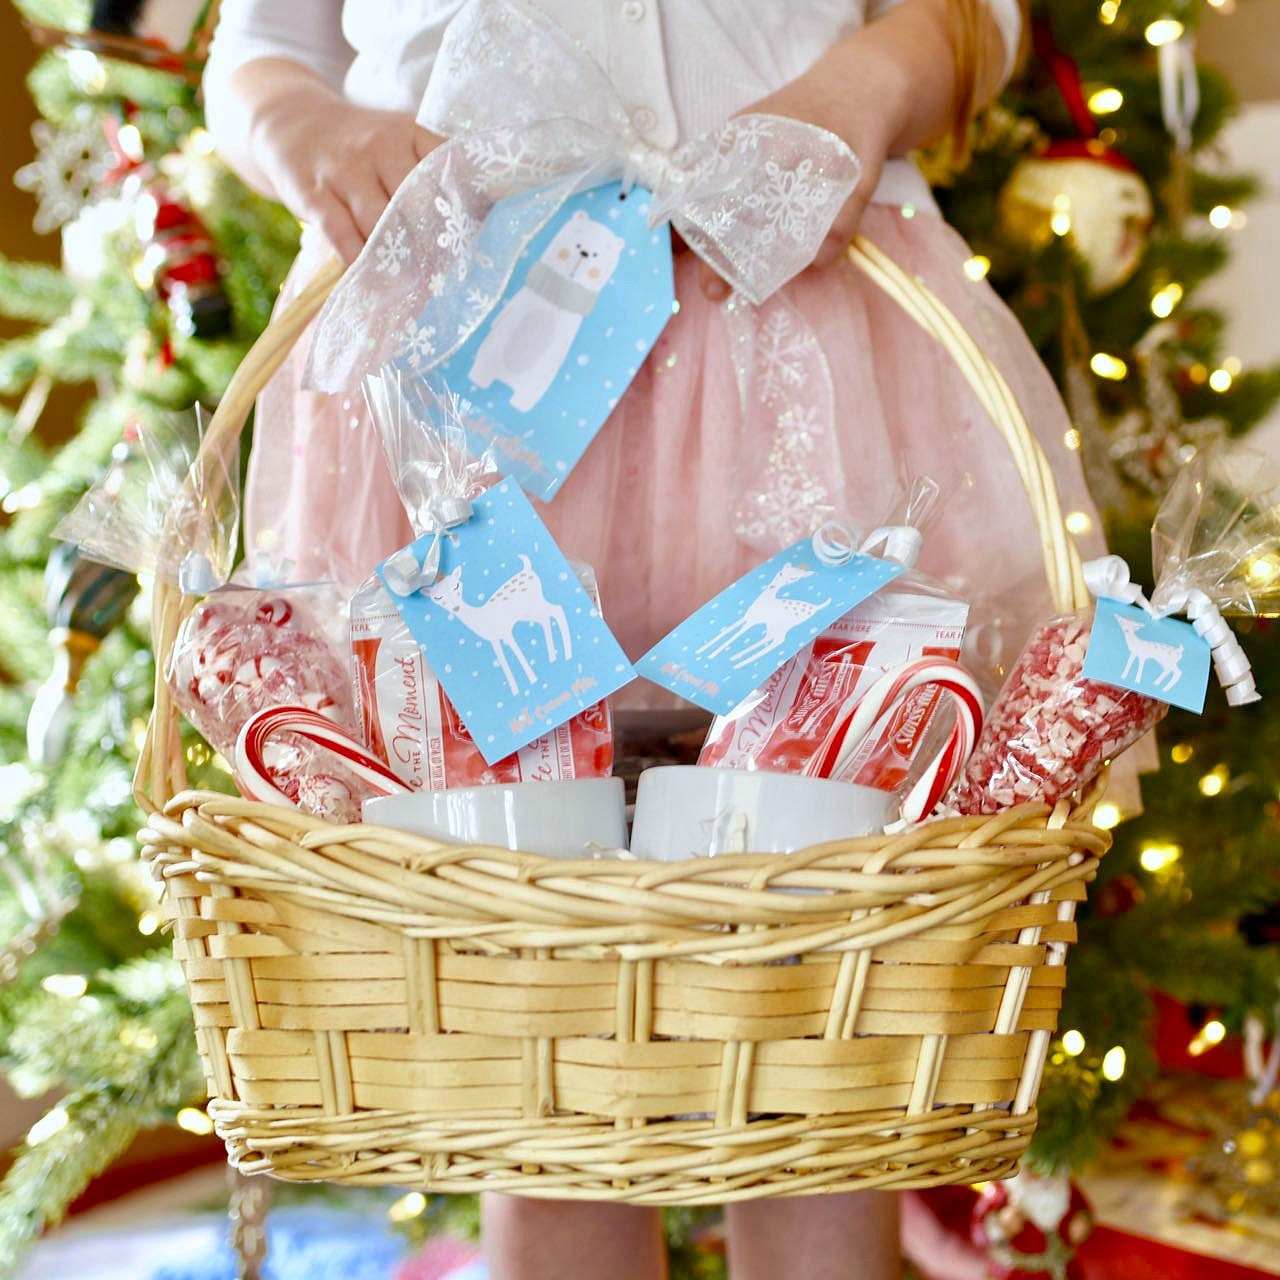 Best ideas about Hot Chocolate Gift Basket Ideas . Save or Pin Hot Cocoa Gift Basket Cute Printable Tags Make Life Lovely Now.